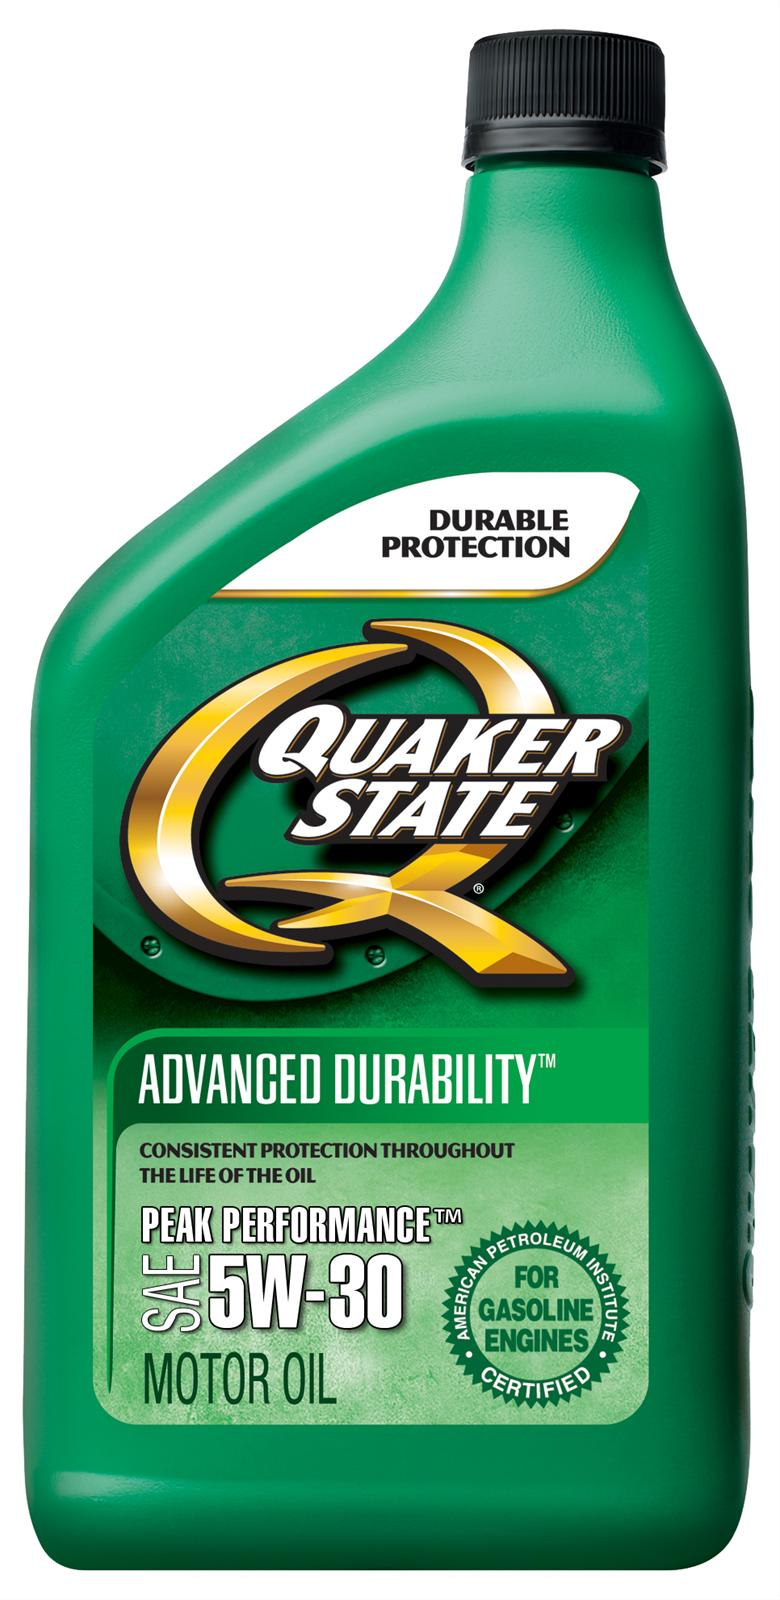 Quaker state advanced durability motor oil 550035180 for Quaker state advanced durability motor oil review